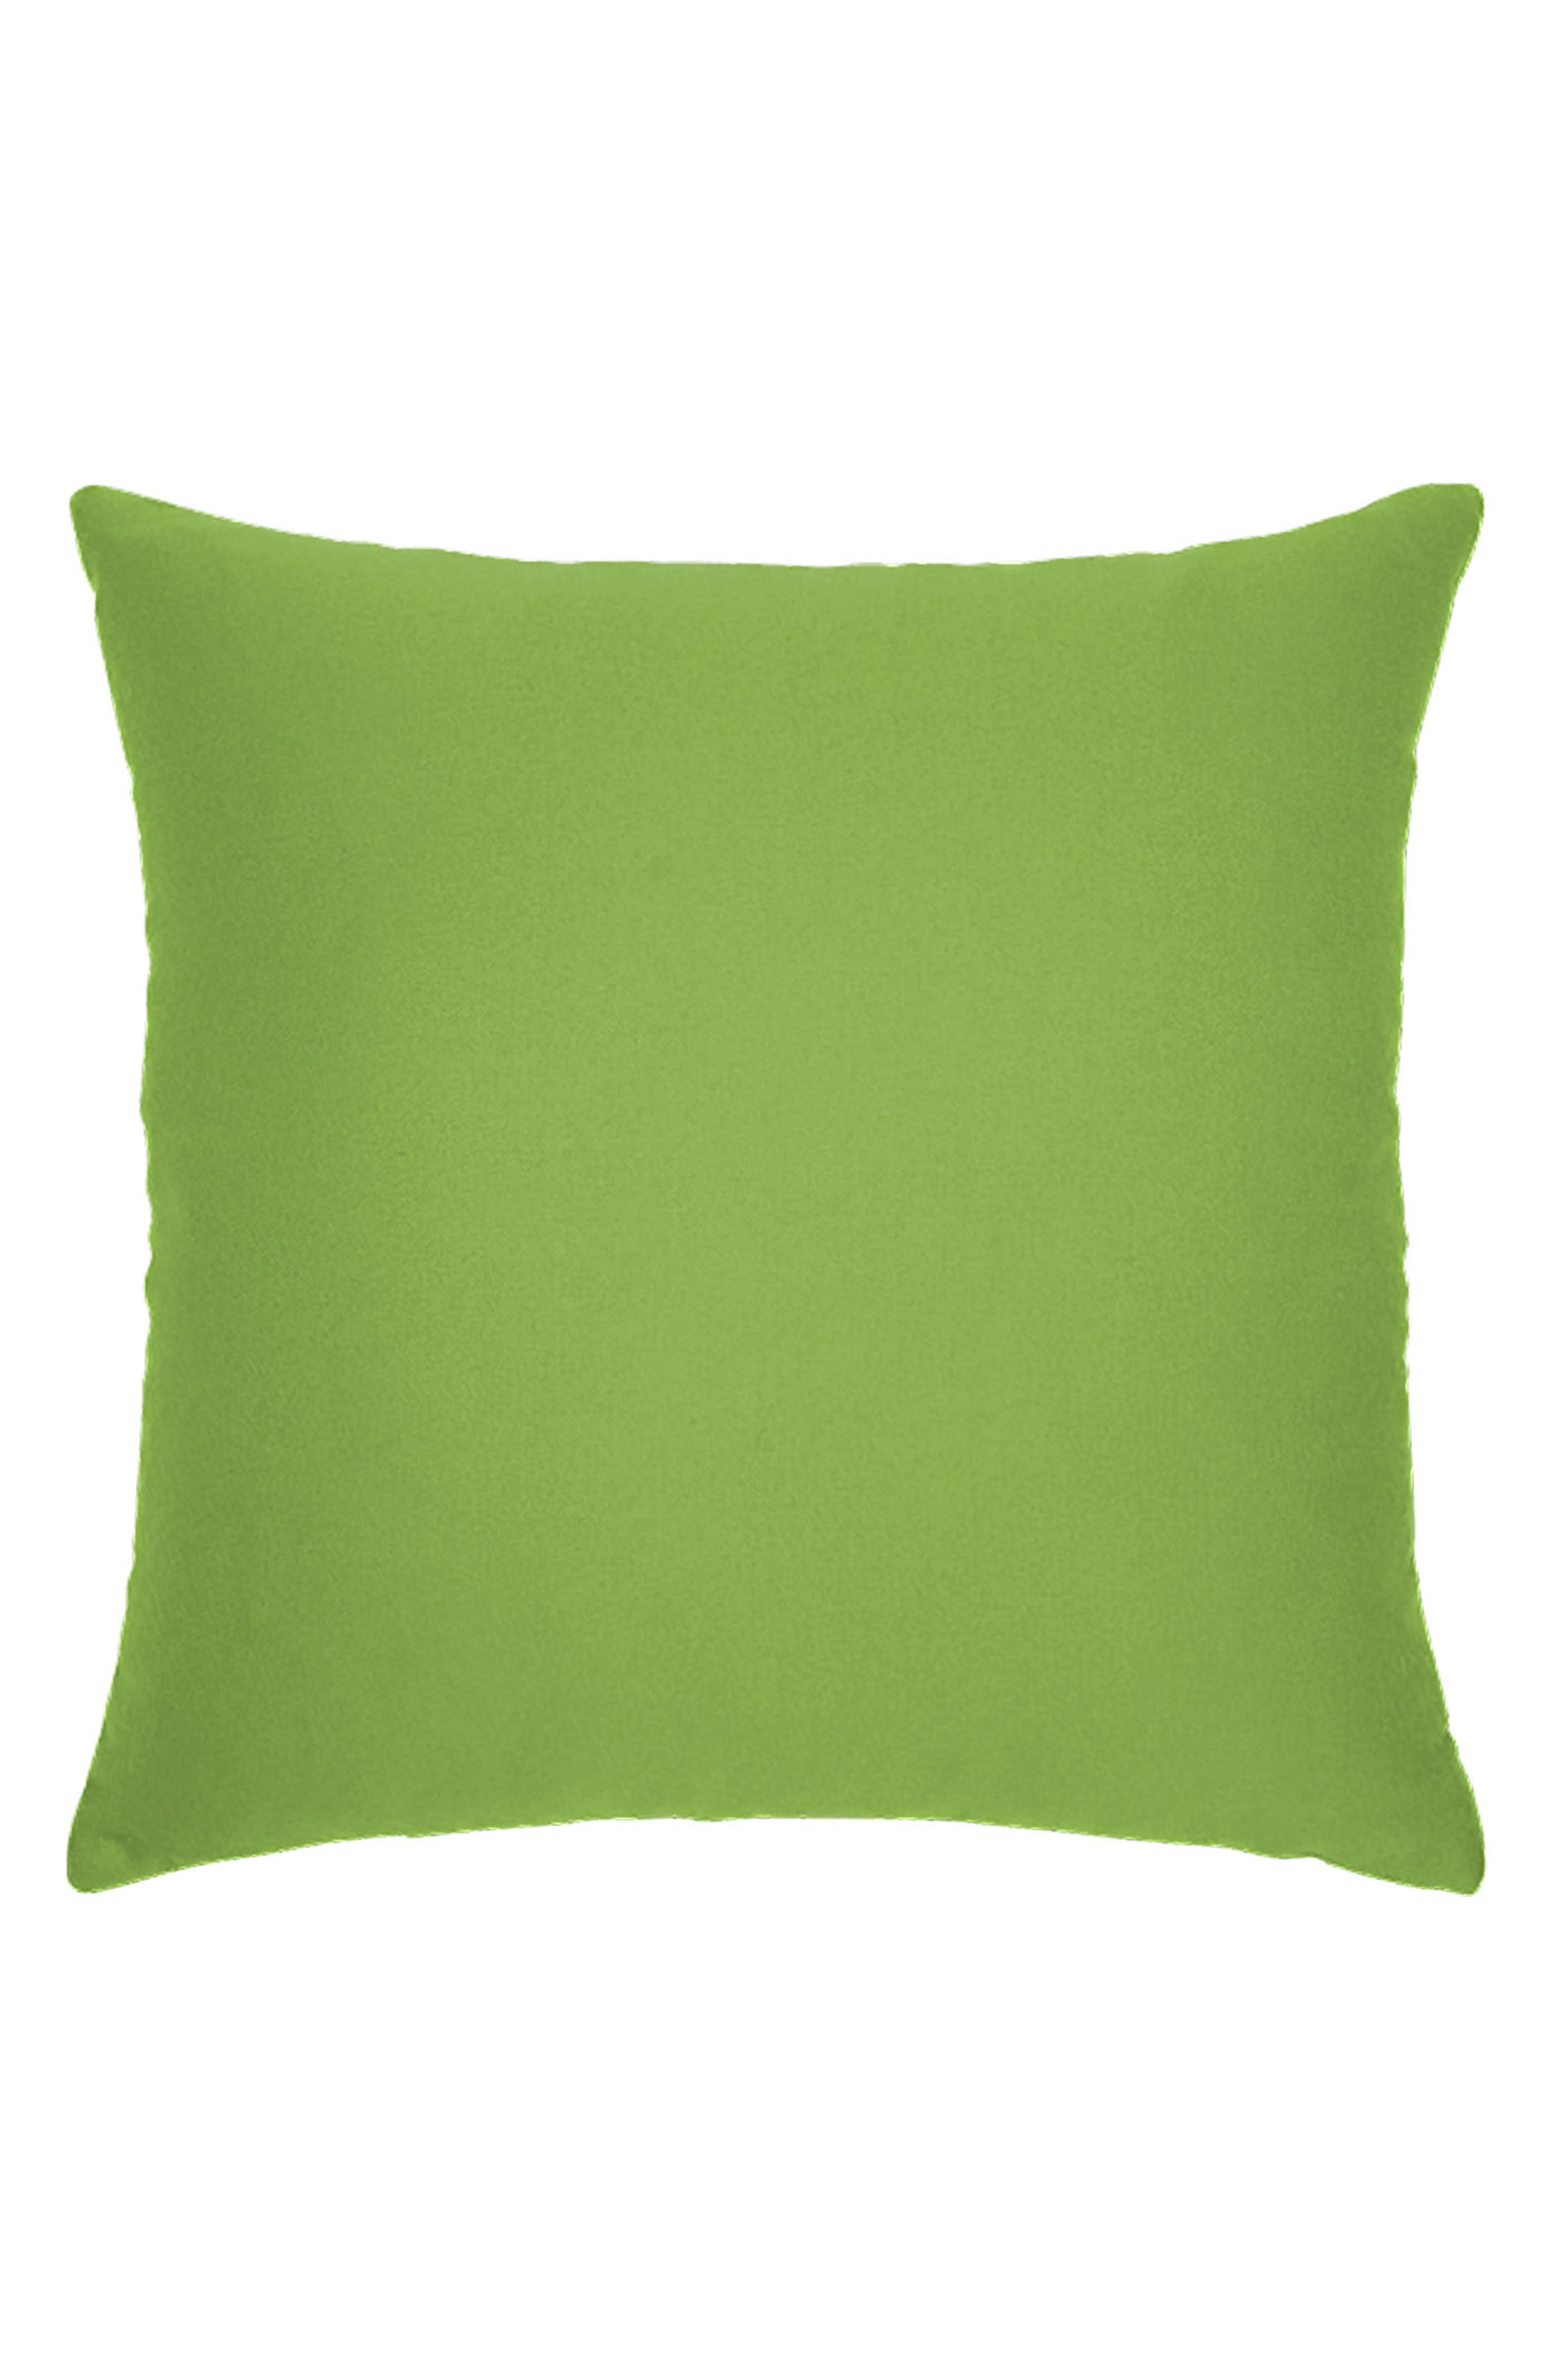 Octoplush Indoor/Outdoor Accent Pillow,                             Alternate thumbnail 2, color,                             GREEN/ BLUE